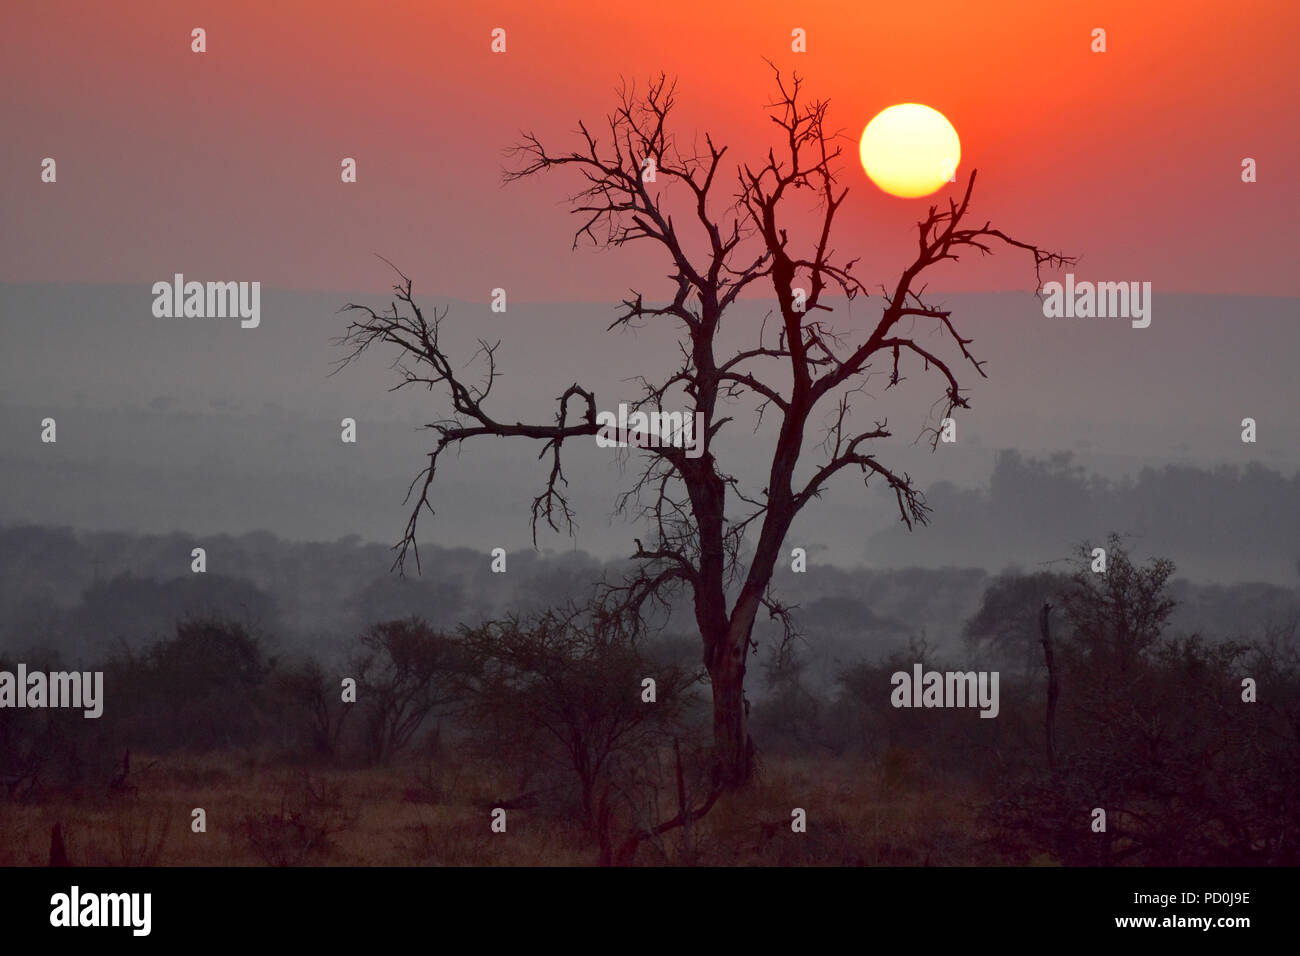 South Africa, a fantastic travel destination to experience third and first world together. Hazy red sunrise in Kruger Park. Smoky sky. - Stock Image